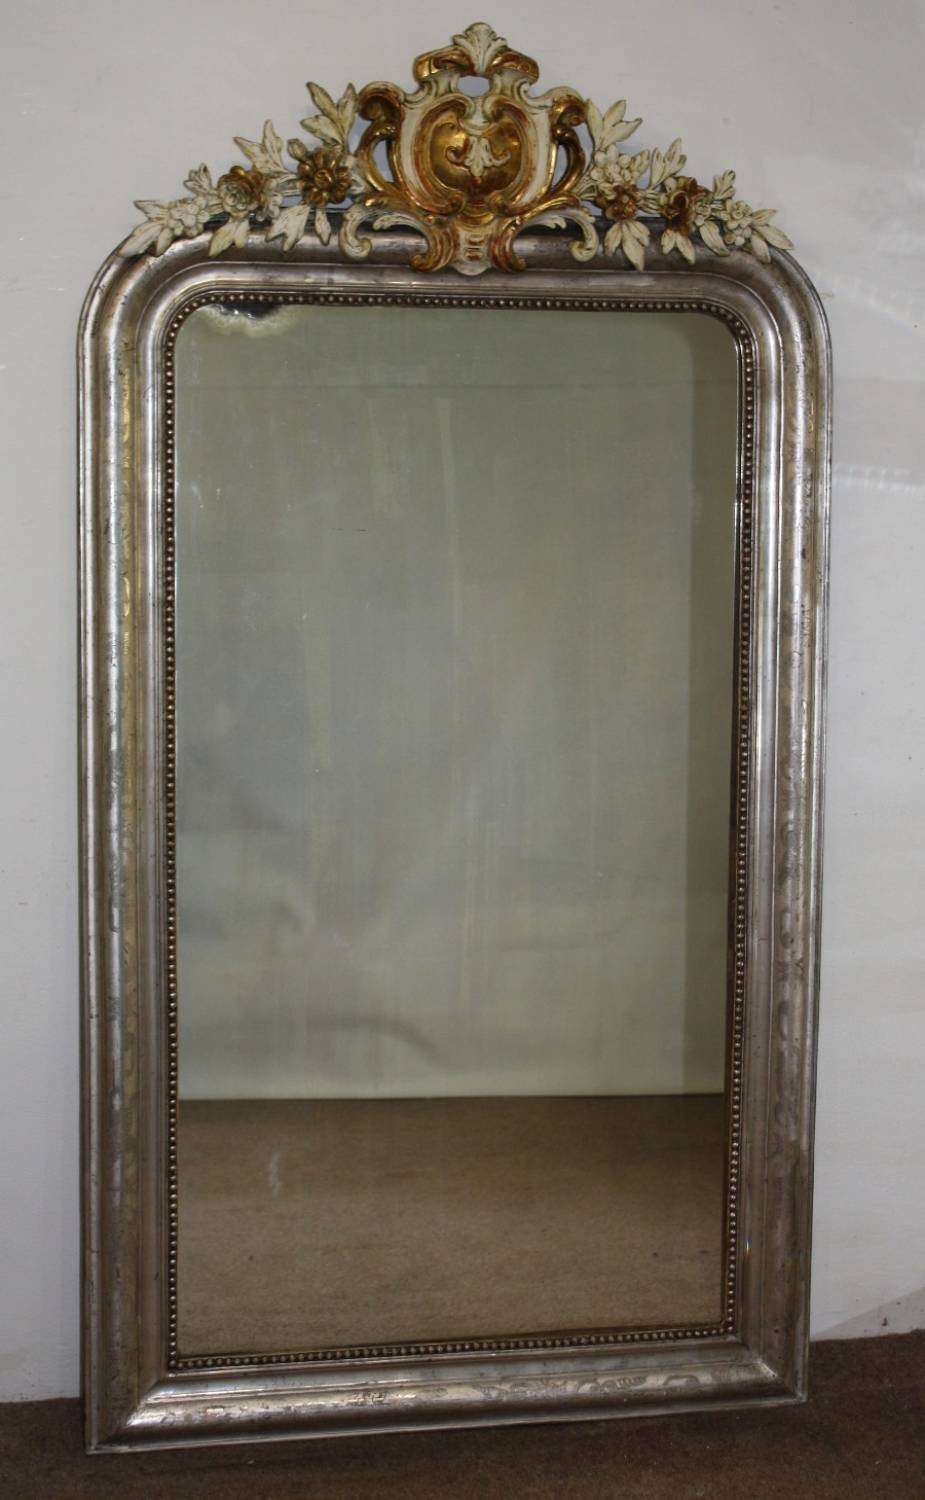 Silver Arched Mirror With Gold And Cream Cart Throughout Full Length Antique Mirrors (View 14 of 15)